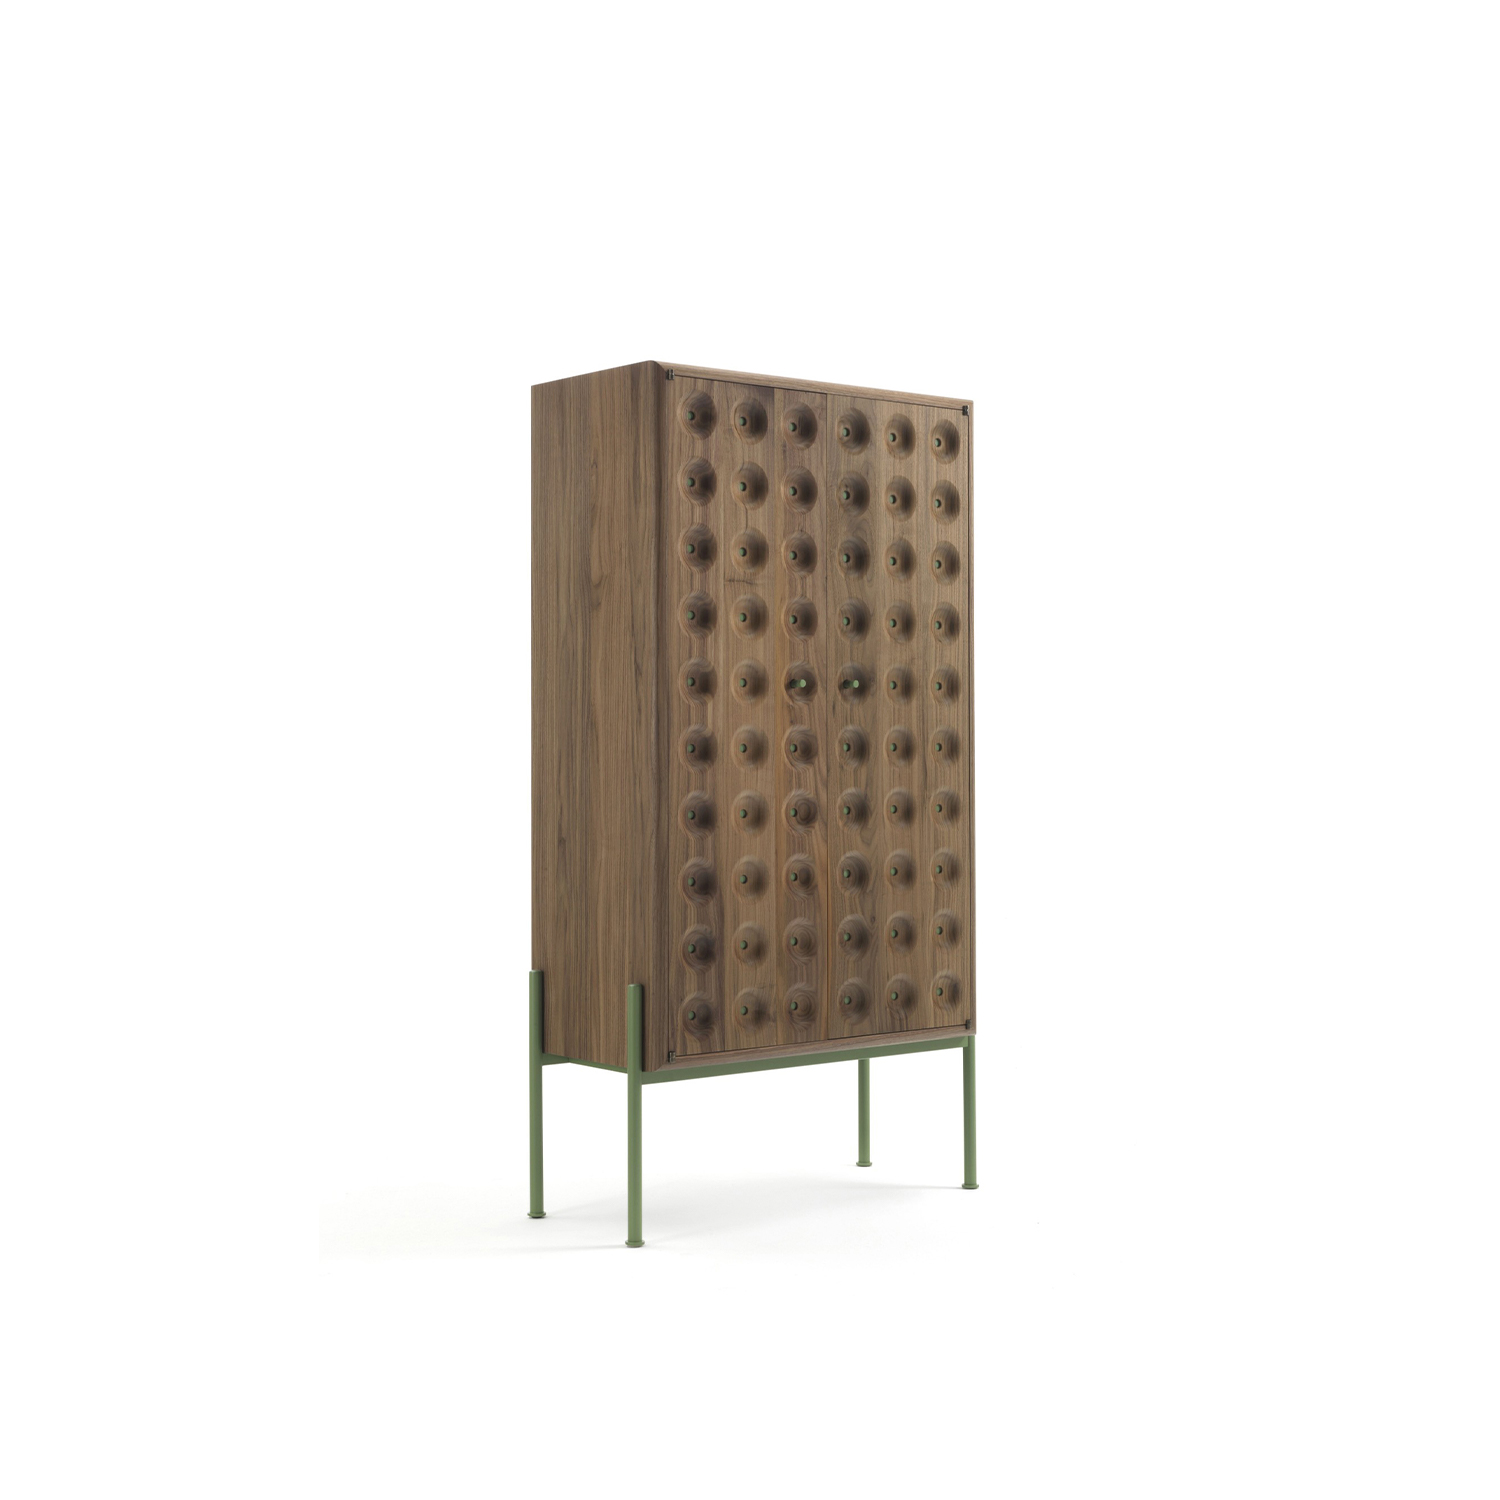 Breathe Cabinet - A cabinet with an epidermal surface. Pores that transpire a veiled sensuality. An invitation to a tactile and exploratory experience. Points of colour and refined details adorn a simple but sculptural volume.